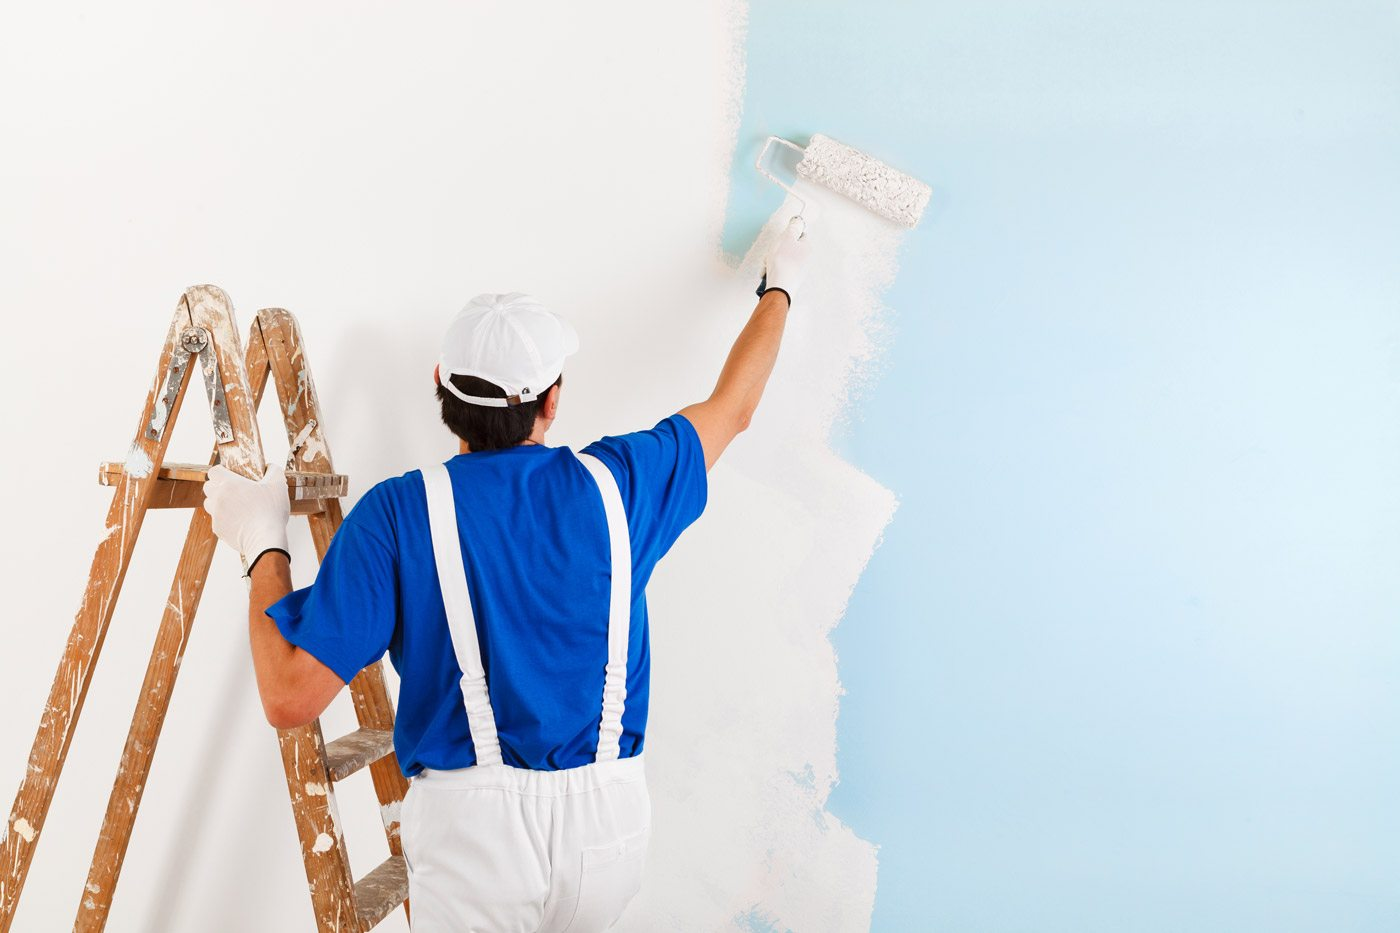 Contact Us-Midland TX Professional Painting Contractors-We offer Residential & Commercial Painting, Interior Painting, Exterior Painting, Primer Painting, Industrial Painting, Professional Painters, Institutional Painters, and more.